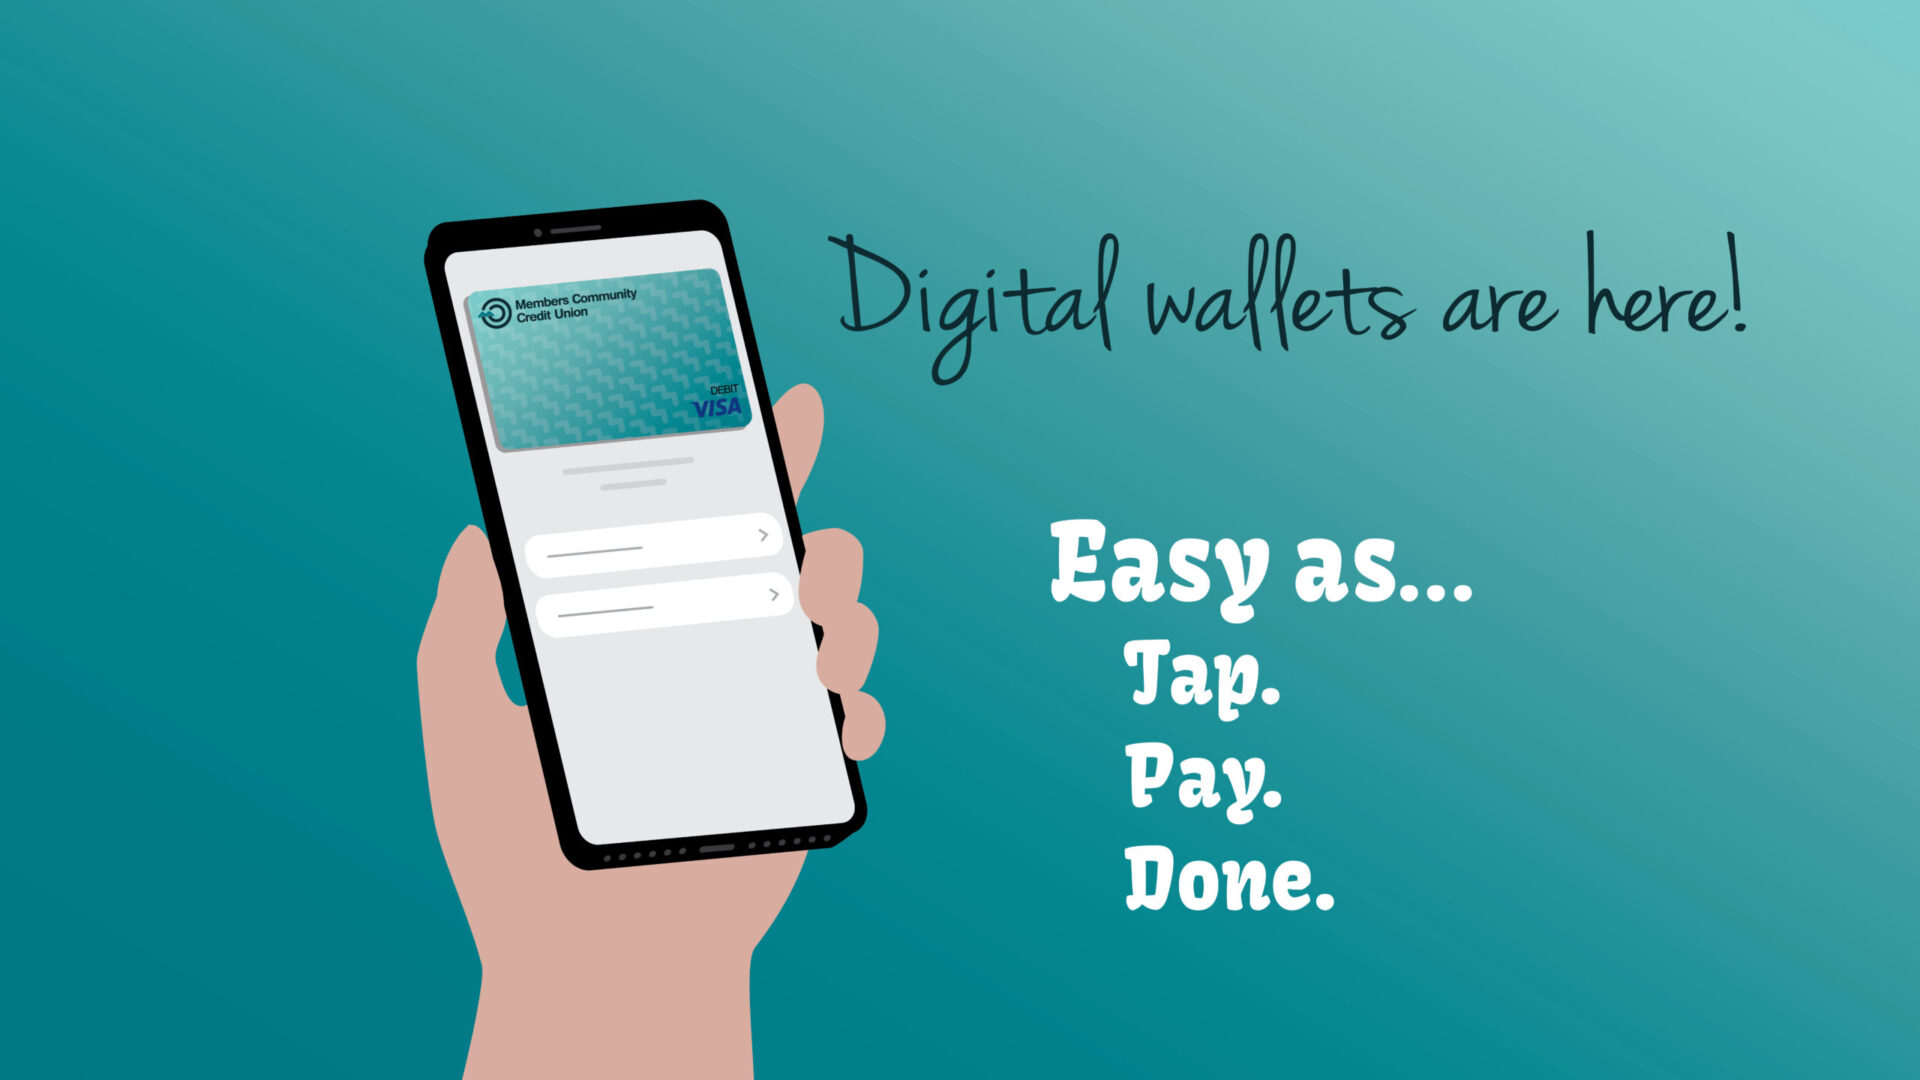 Teal background with text - digital wallets are here. Easy as Tap, Pay, Done. Hand holding cell phone with MCCU debit card.